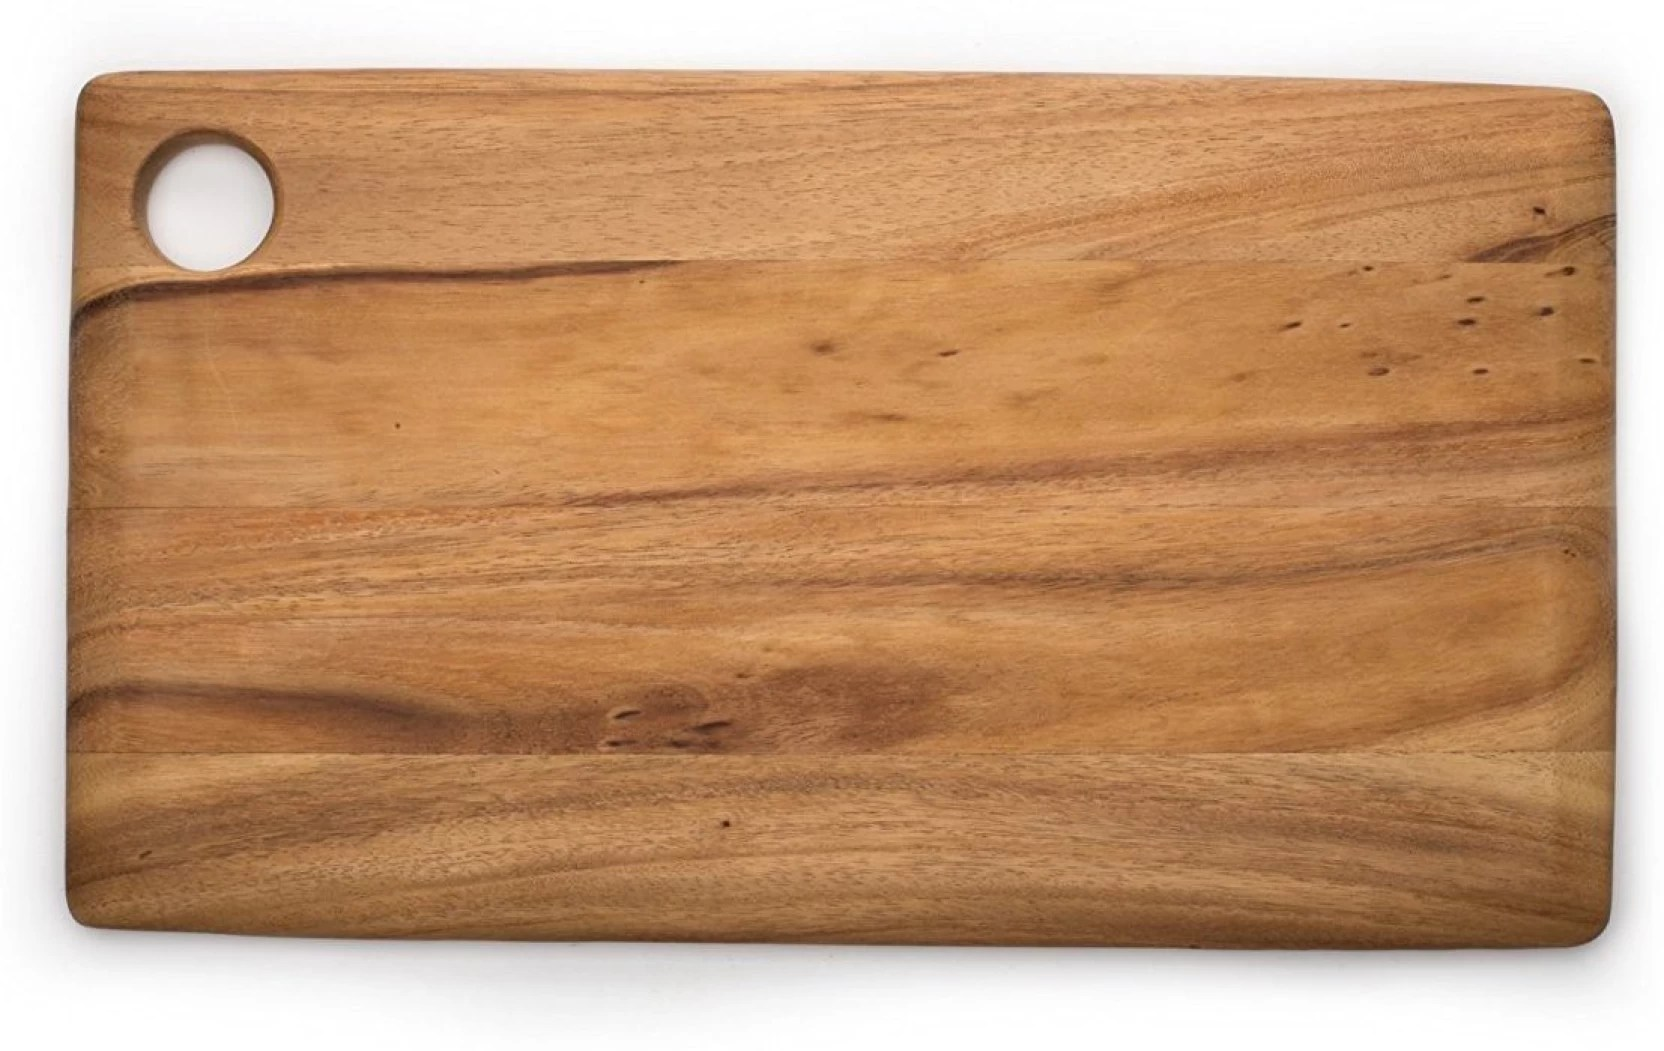 Acacia Bois Bois Art Acacia Wooden Cutting Board With A Hole To Hang Wooden Chopping Board Wooden Multipurpose Serving Tray 18 X 10 In Wooden Cutting Board